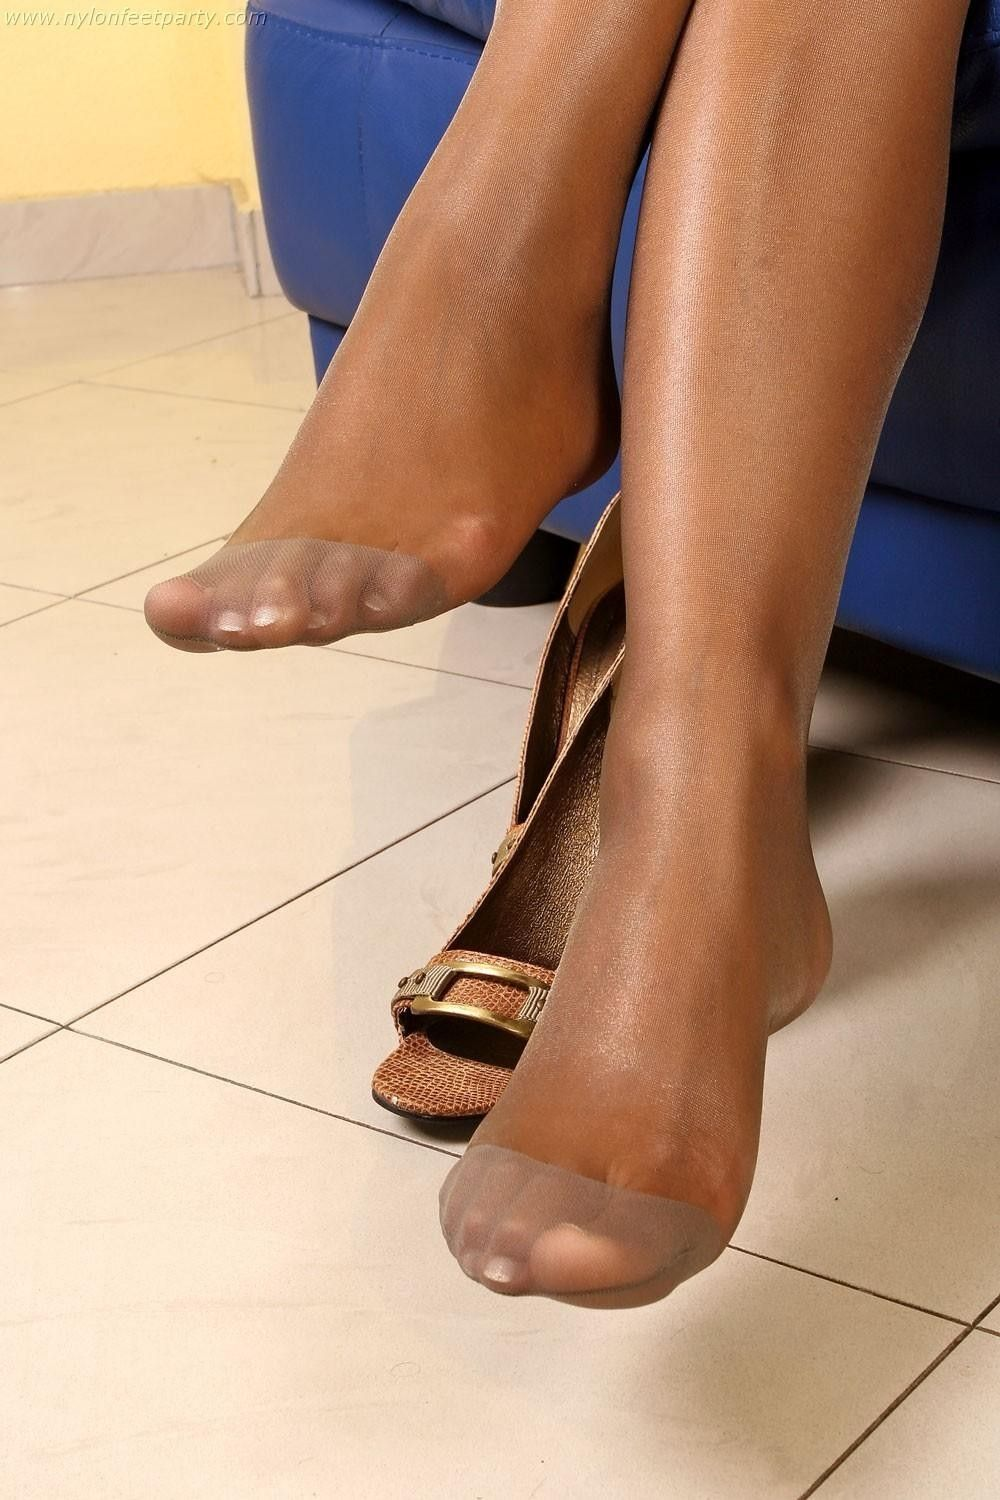 Terribly hot pretty toes and pantyhose